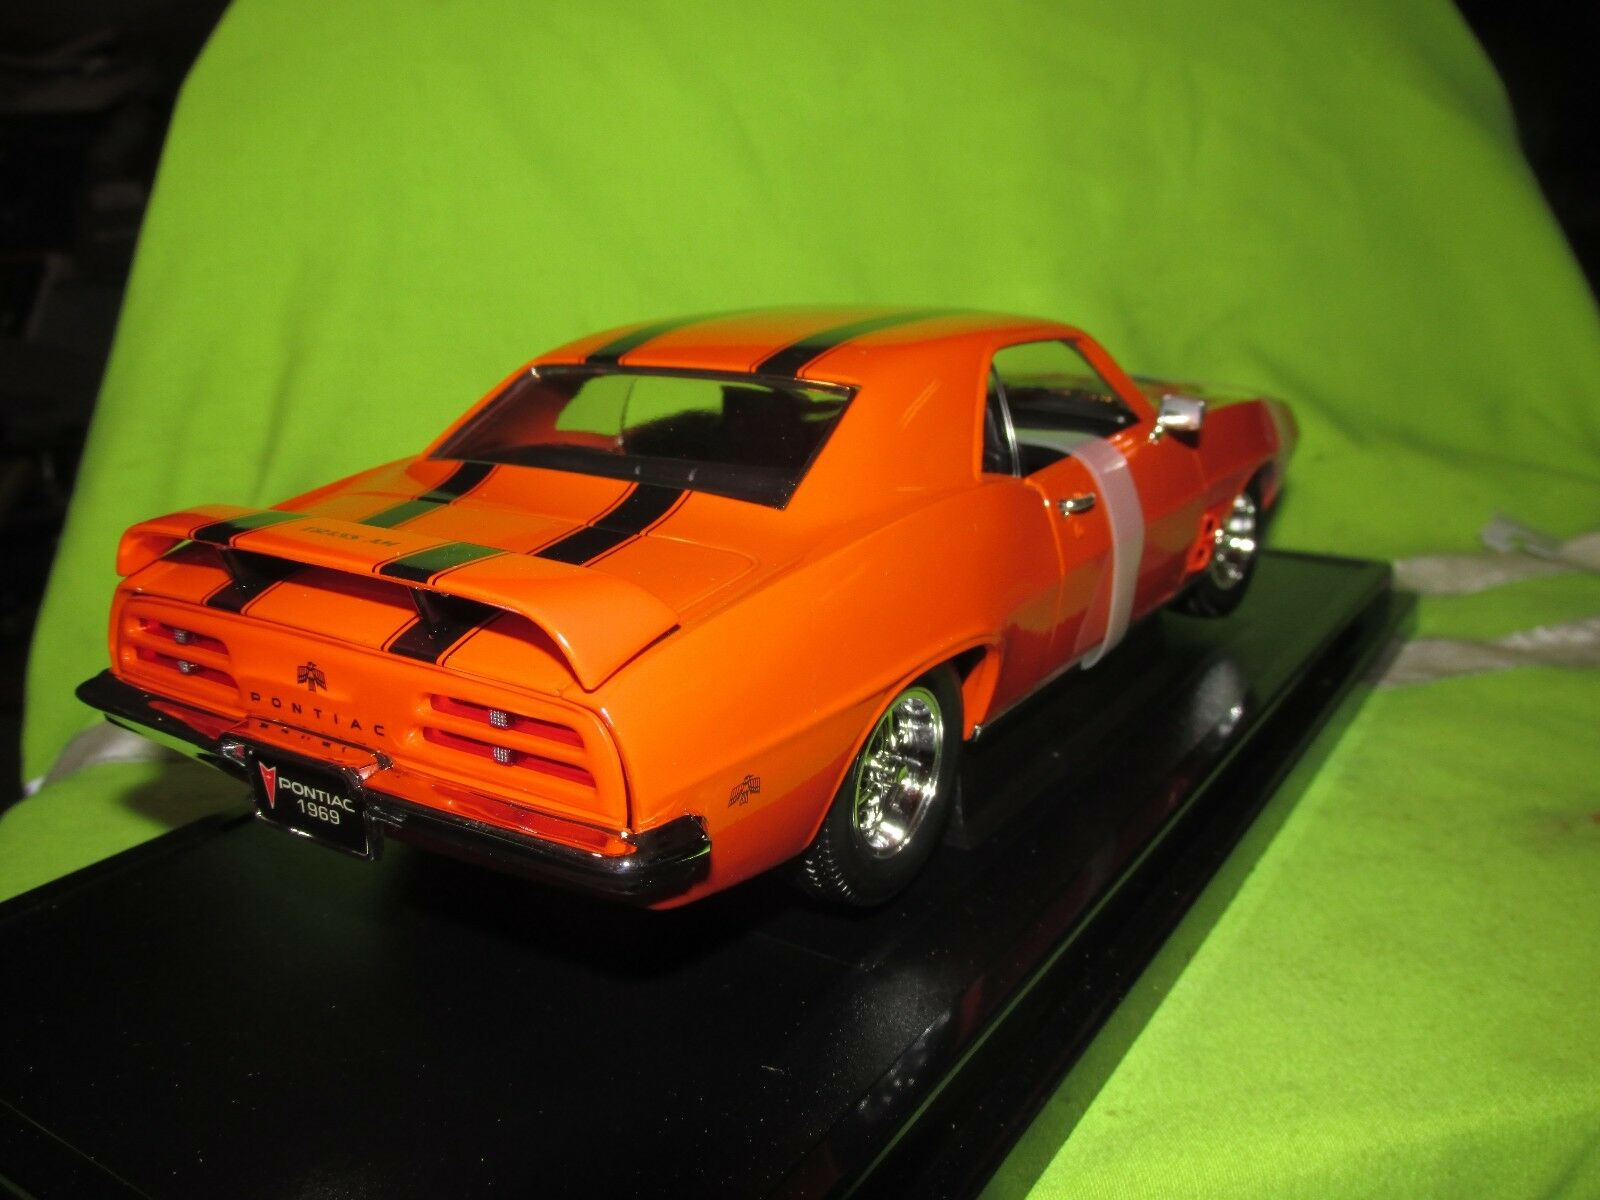 1969 firebird trans am 1 18 ROAD SIGNATURE SIGNATURE SIGNATURE YAT MING NICE DETAIL see pictures 0a18f5